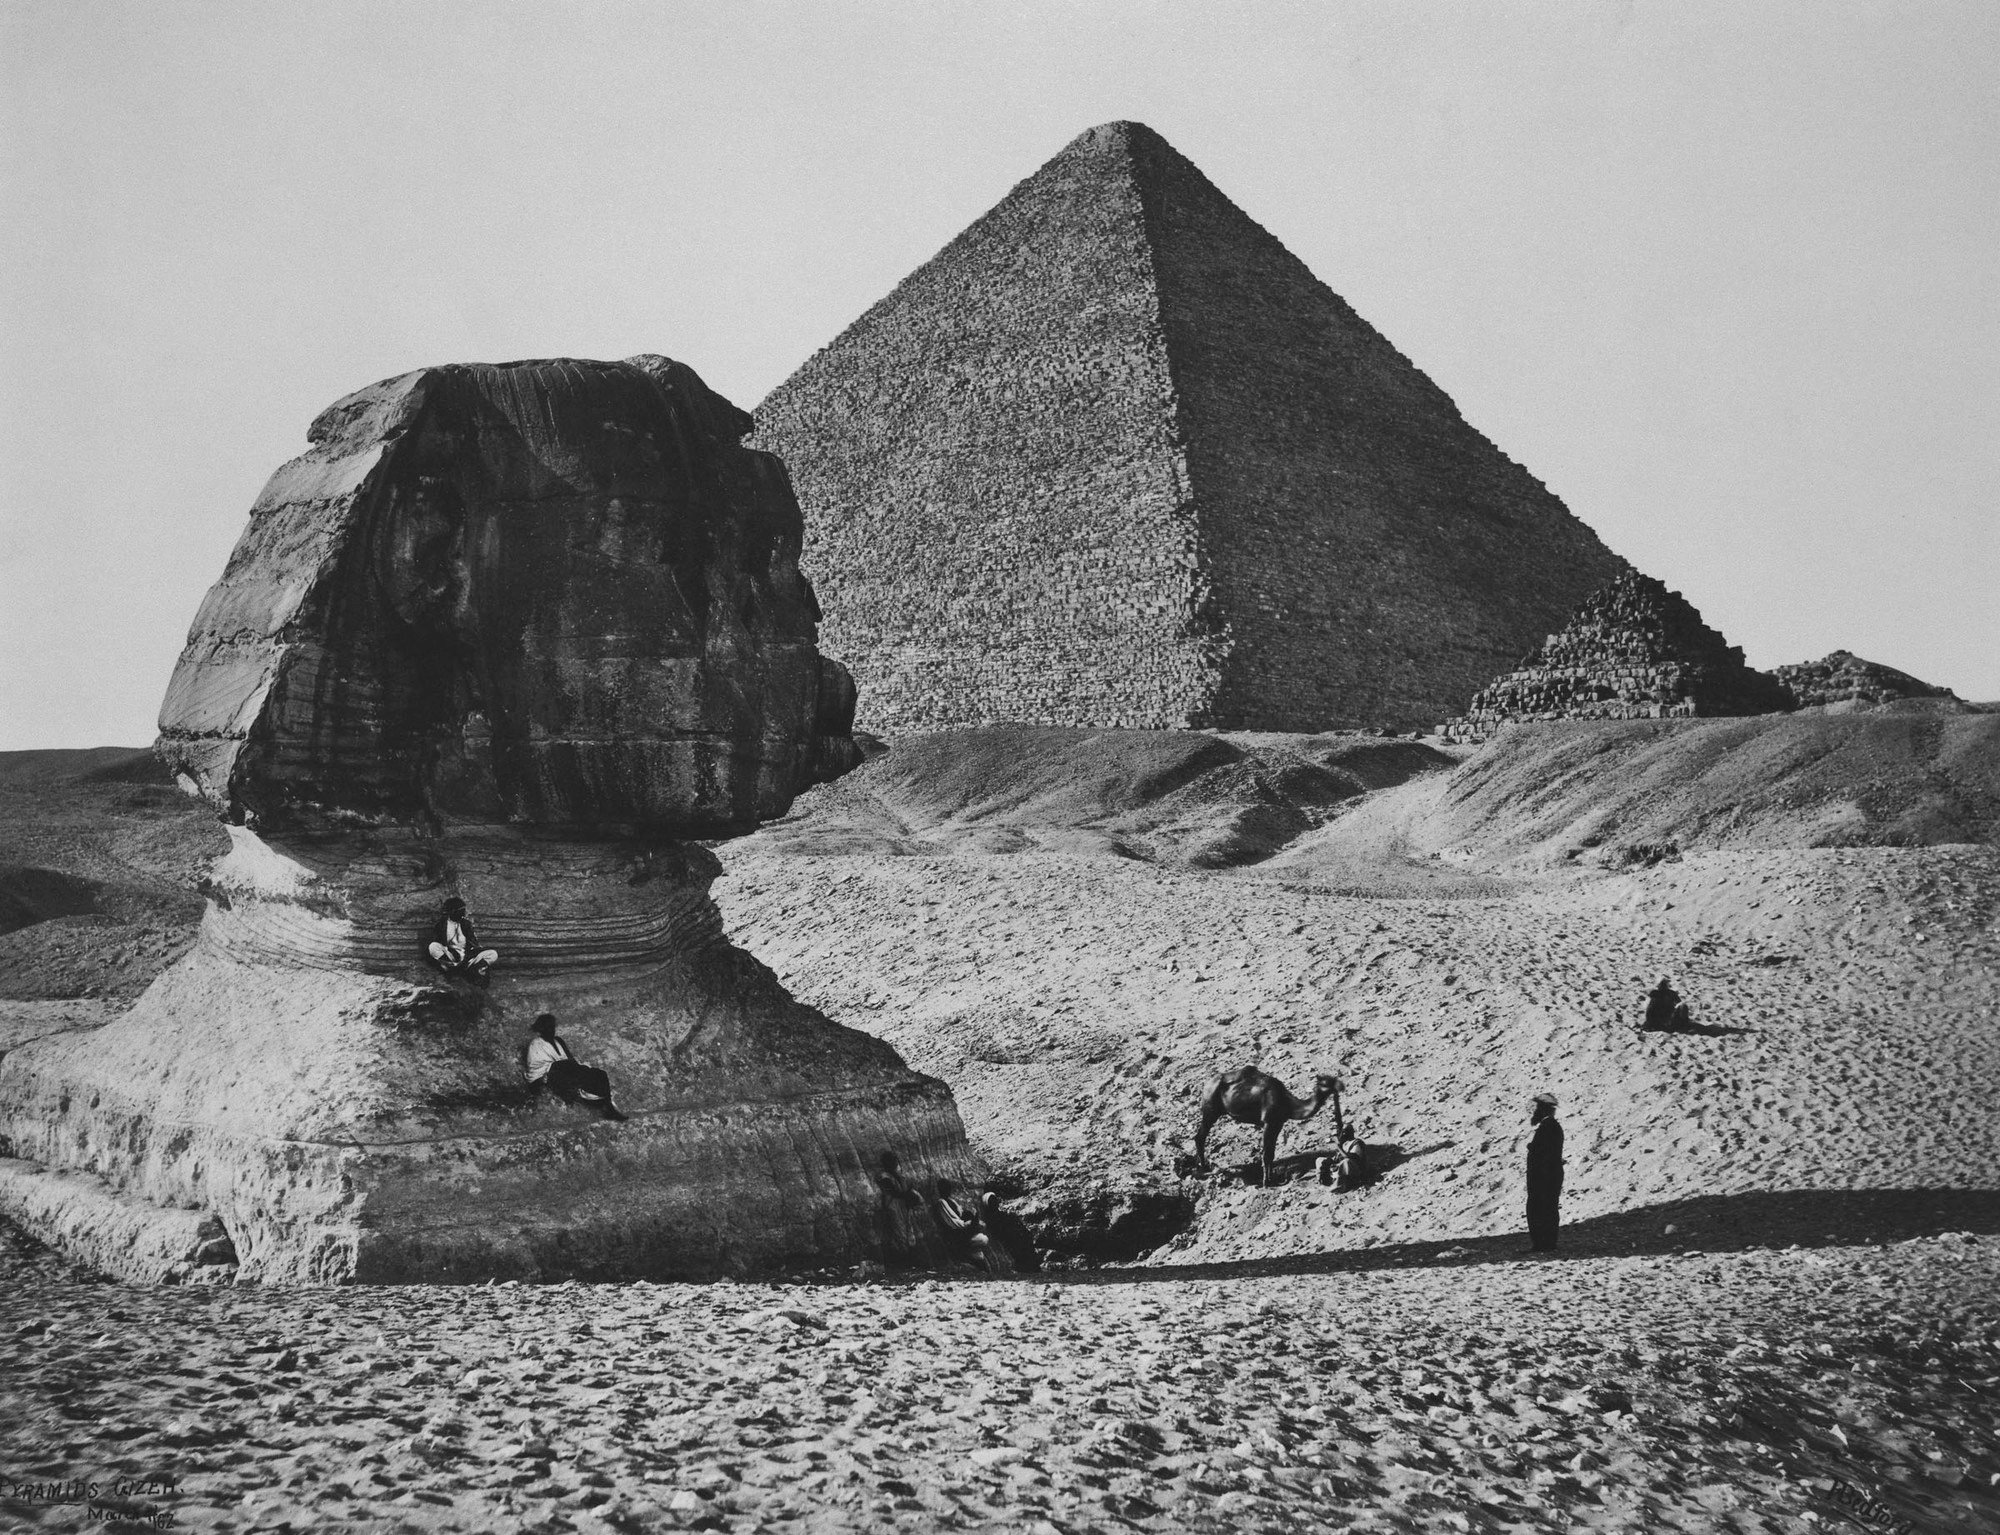 Francis Bedford was the first ever travel photographer